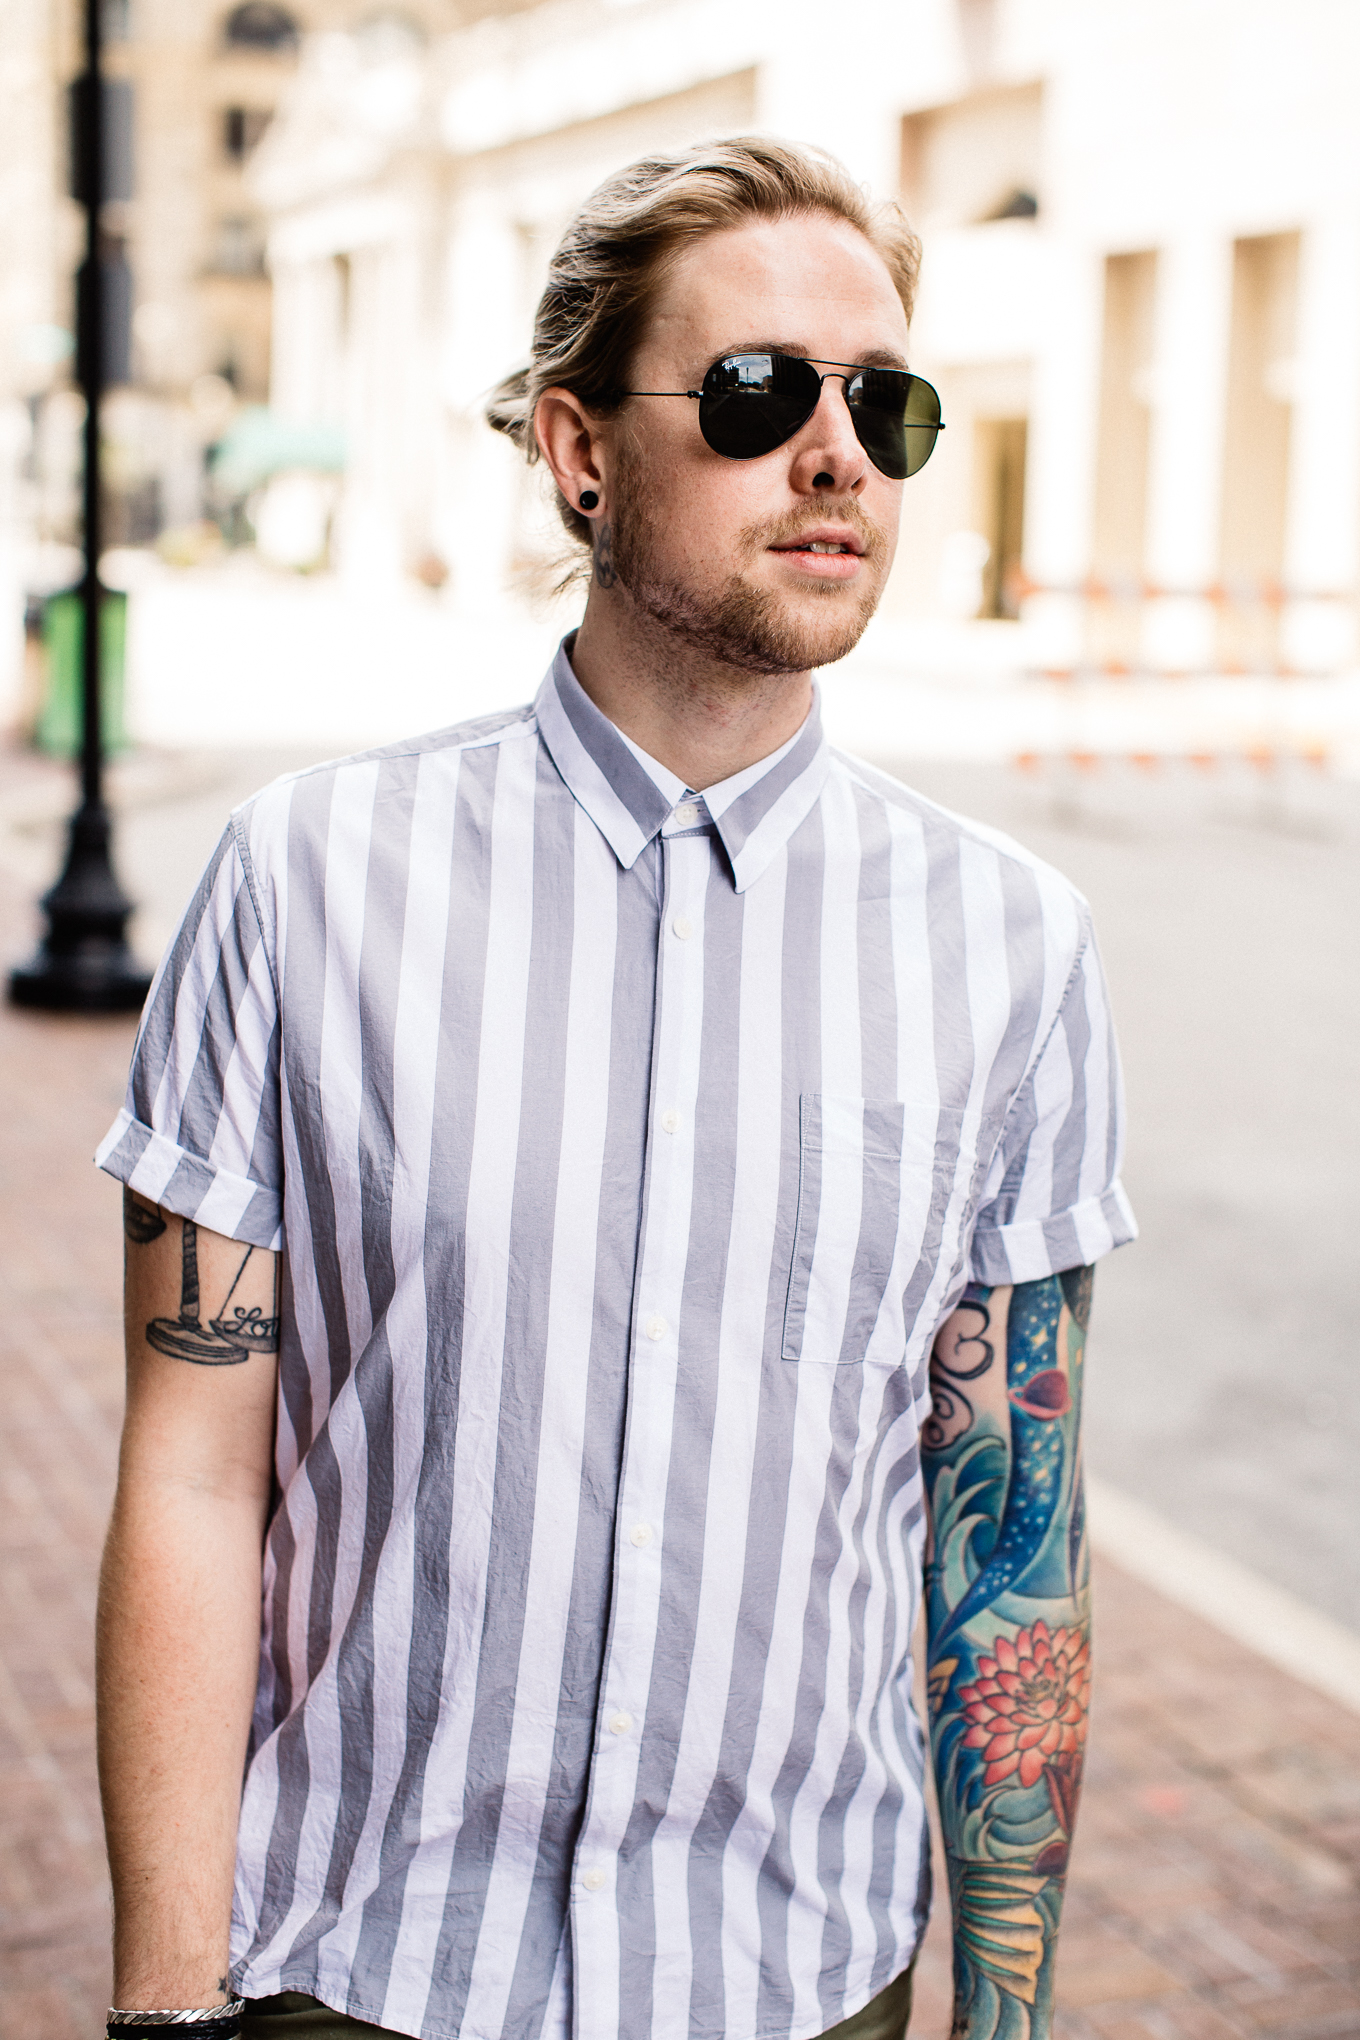 mens fashion blog, mens fashion blogger, mens button up shirts, personal style blog, mens stripe shirt